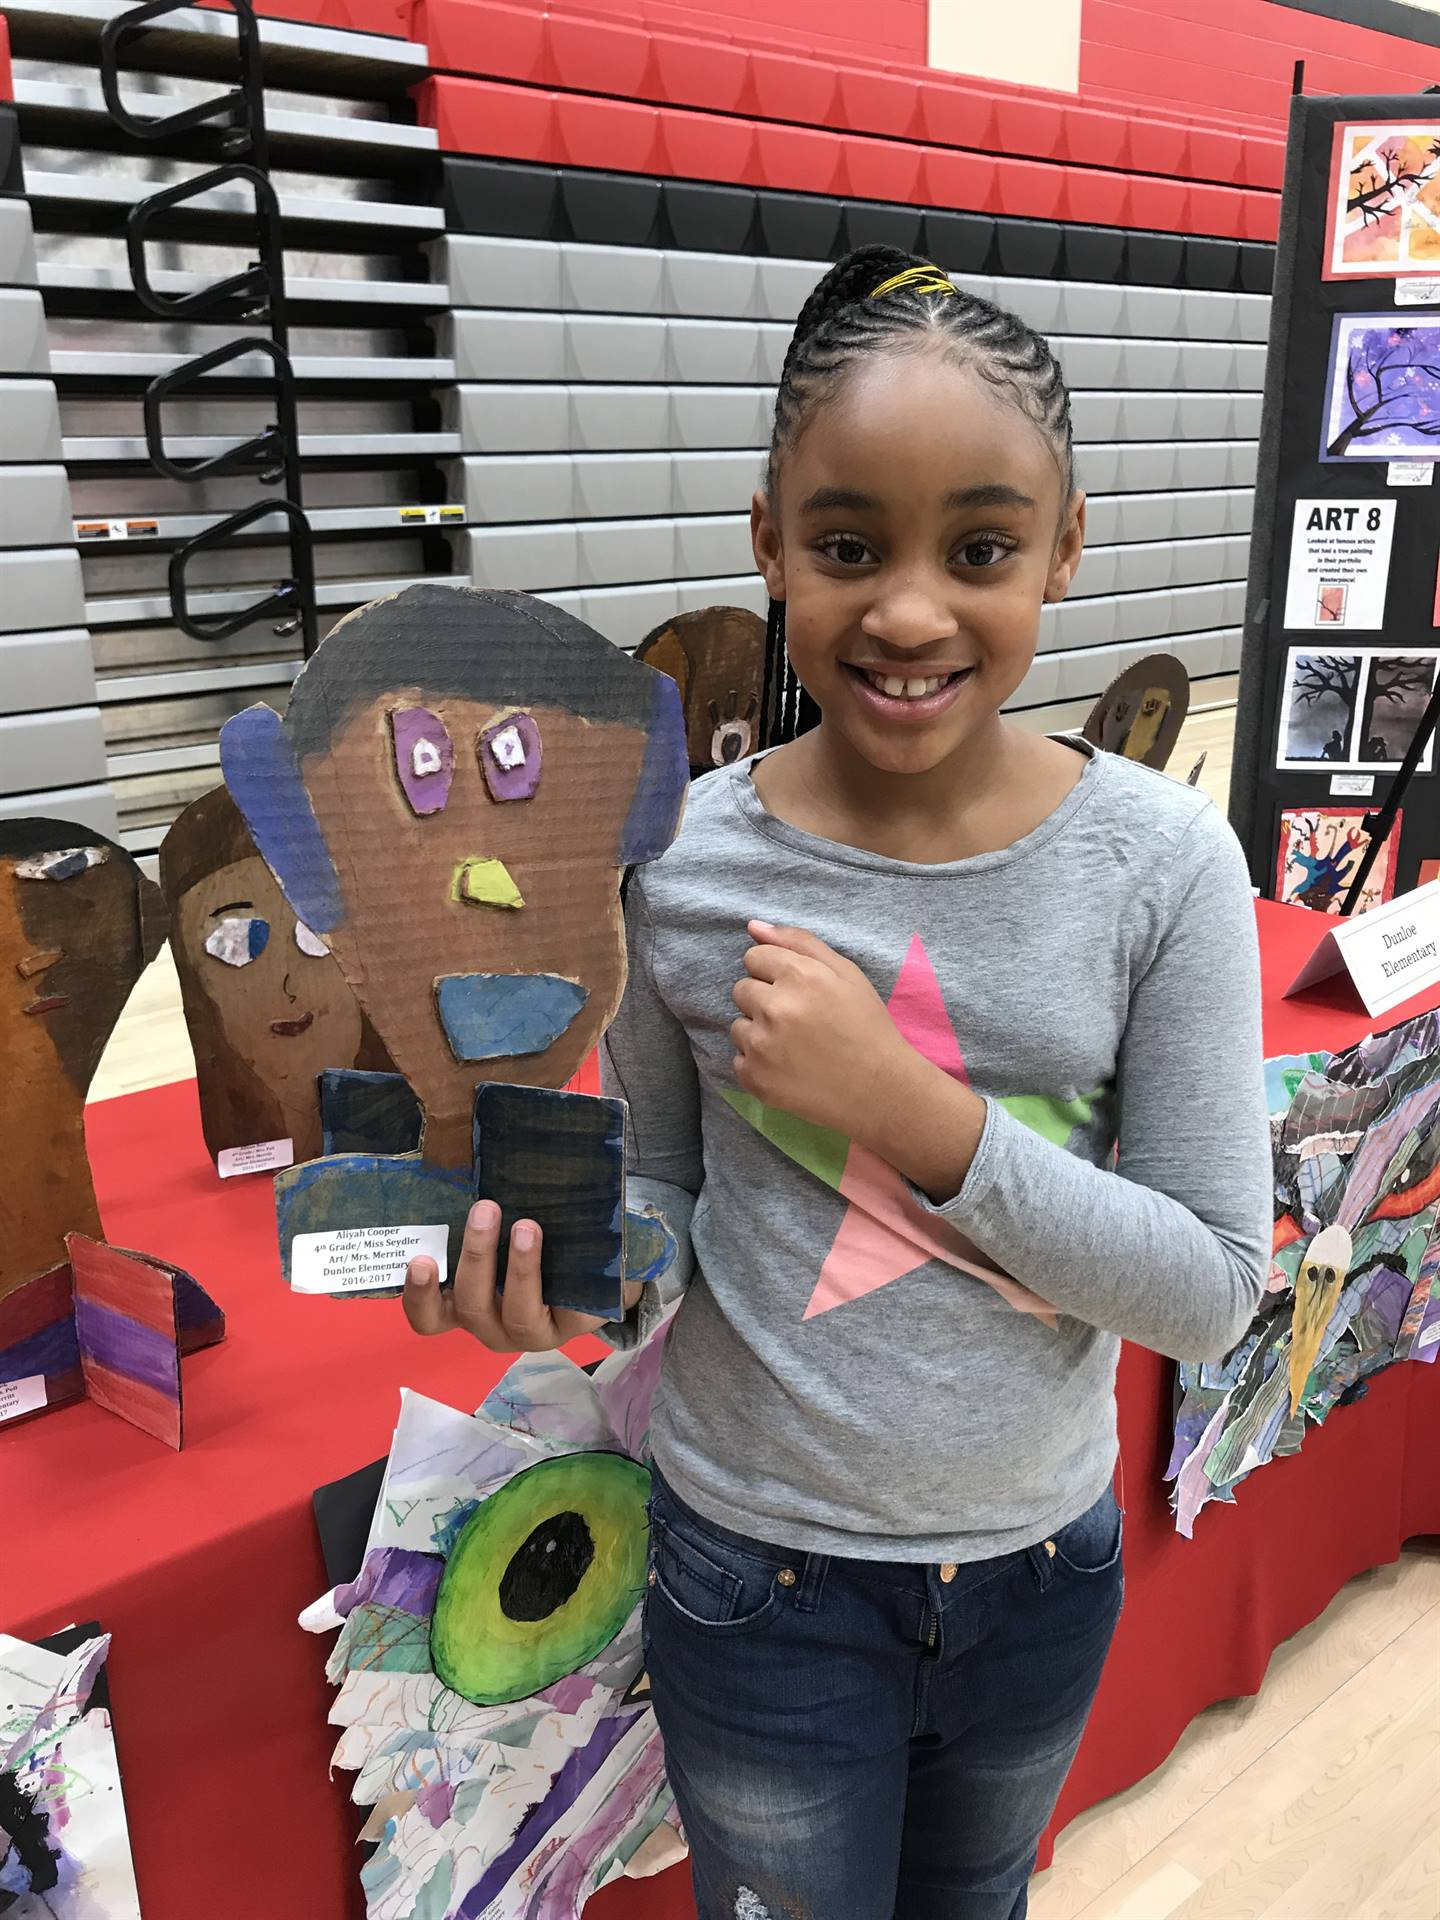 Aliyah with her award winning art project.